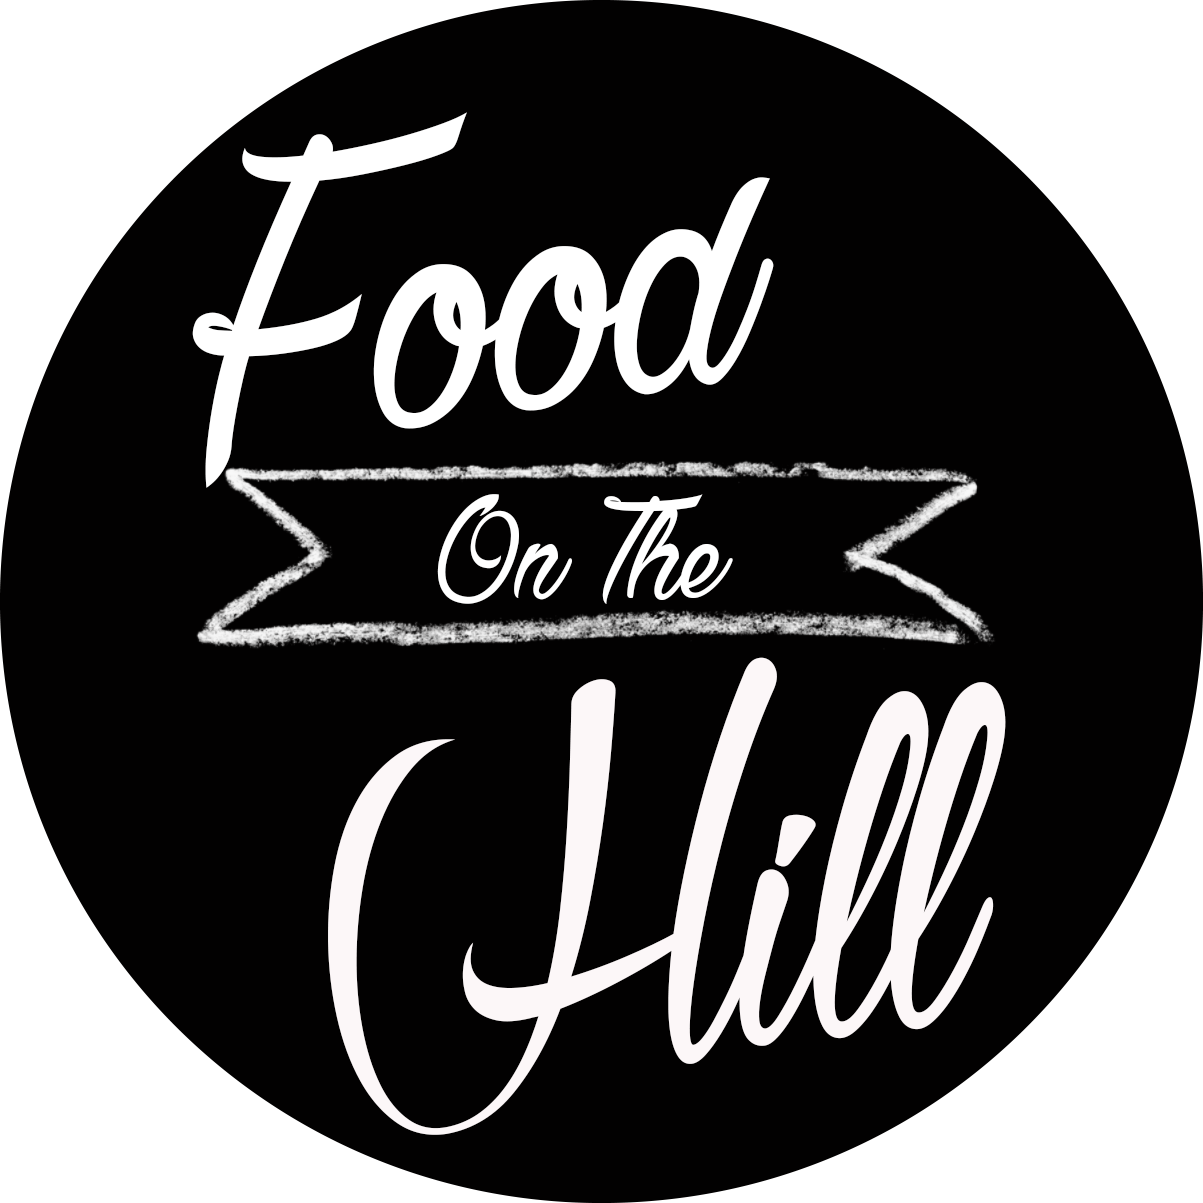 Food On The Hill